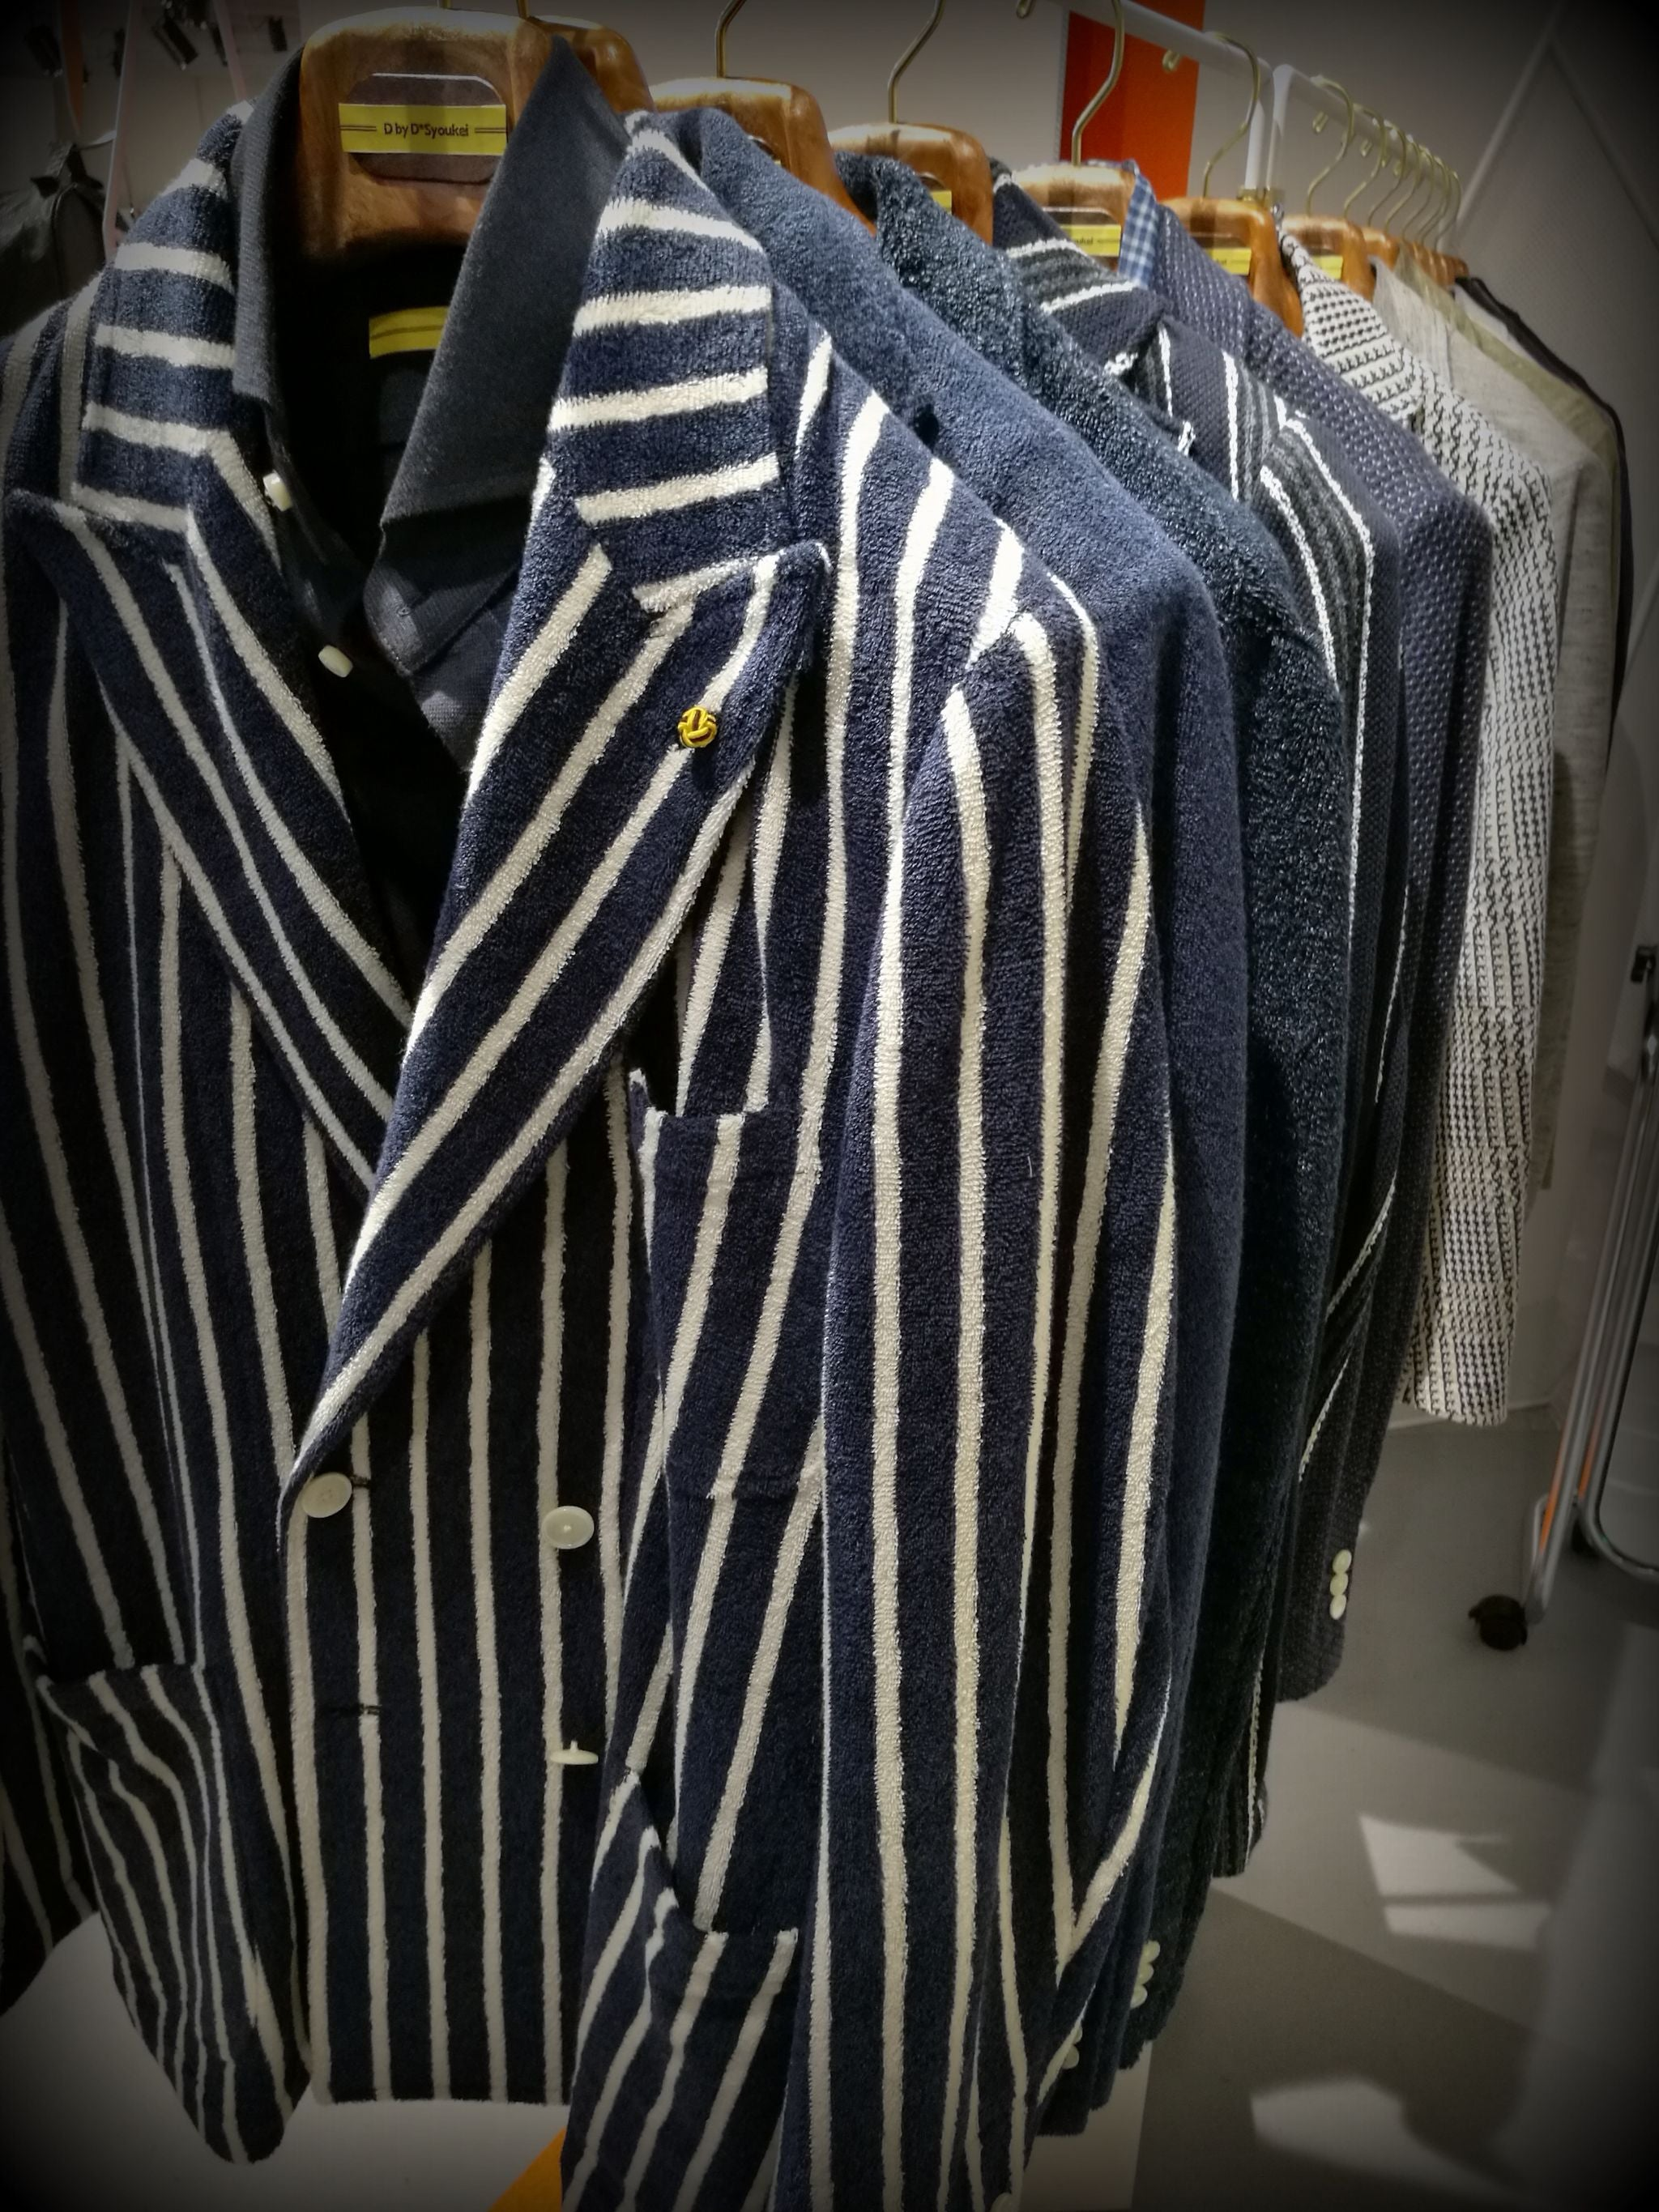 Pitti Uomo 90 trends - striped spor coats